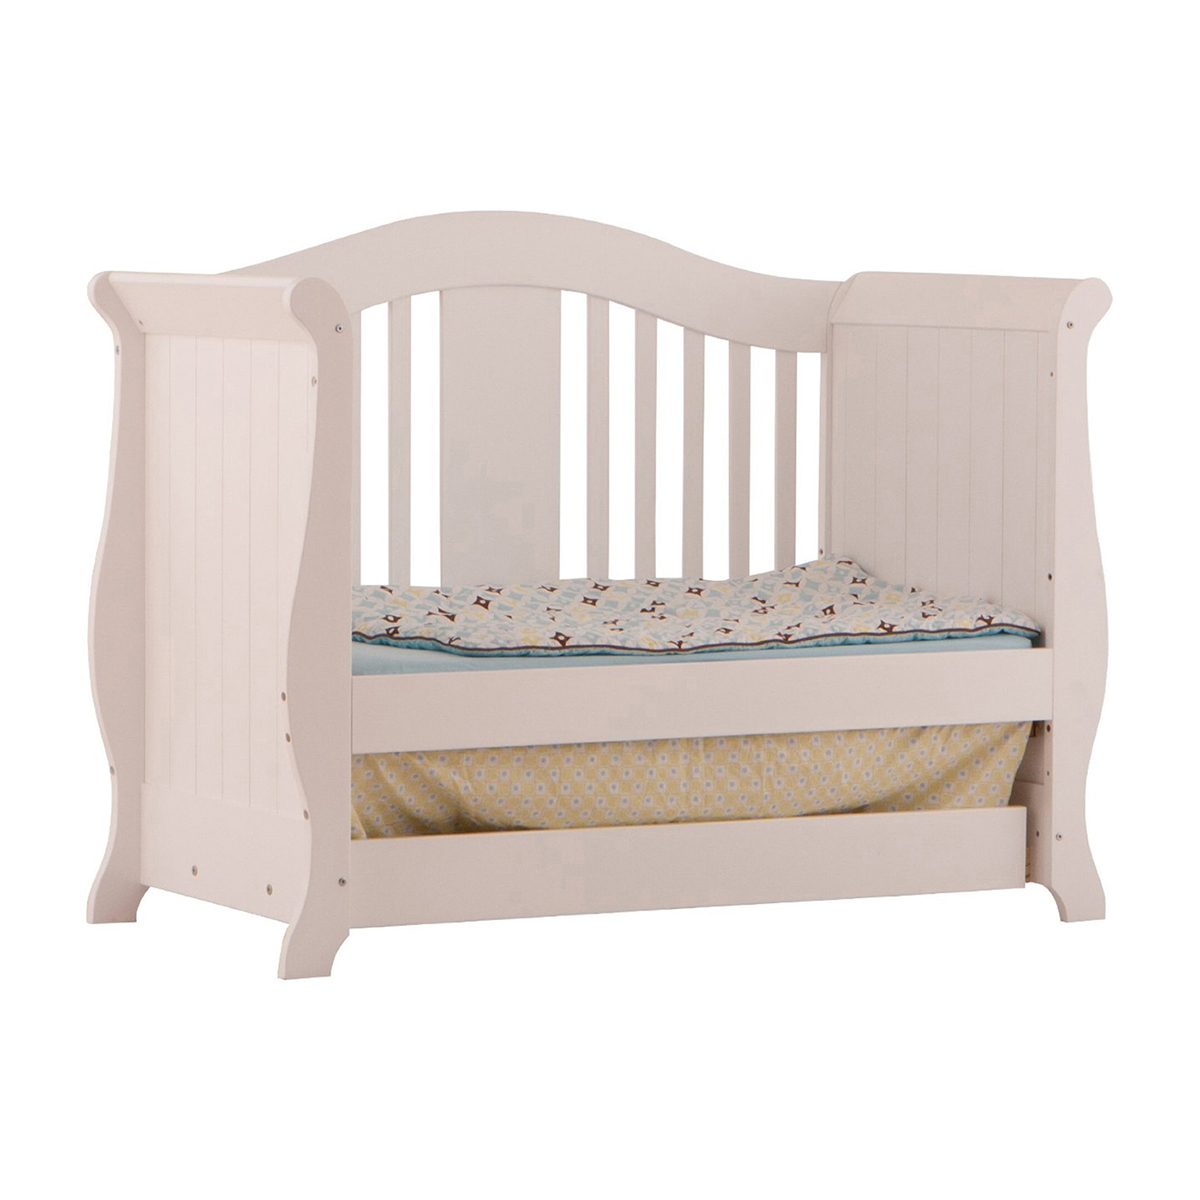 Storkcraft White Vittoria 3 In 1 Convertible Crib And Aspen Changing Table  With Drawer 2 Piece Nursery Set FREE SHIPPING